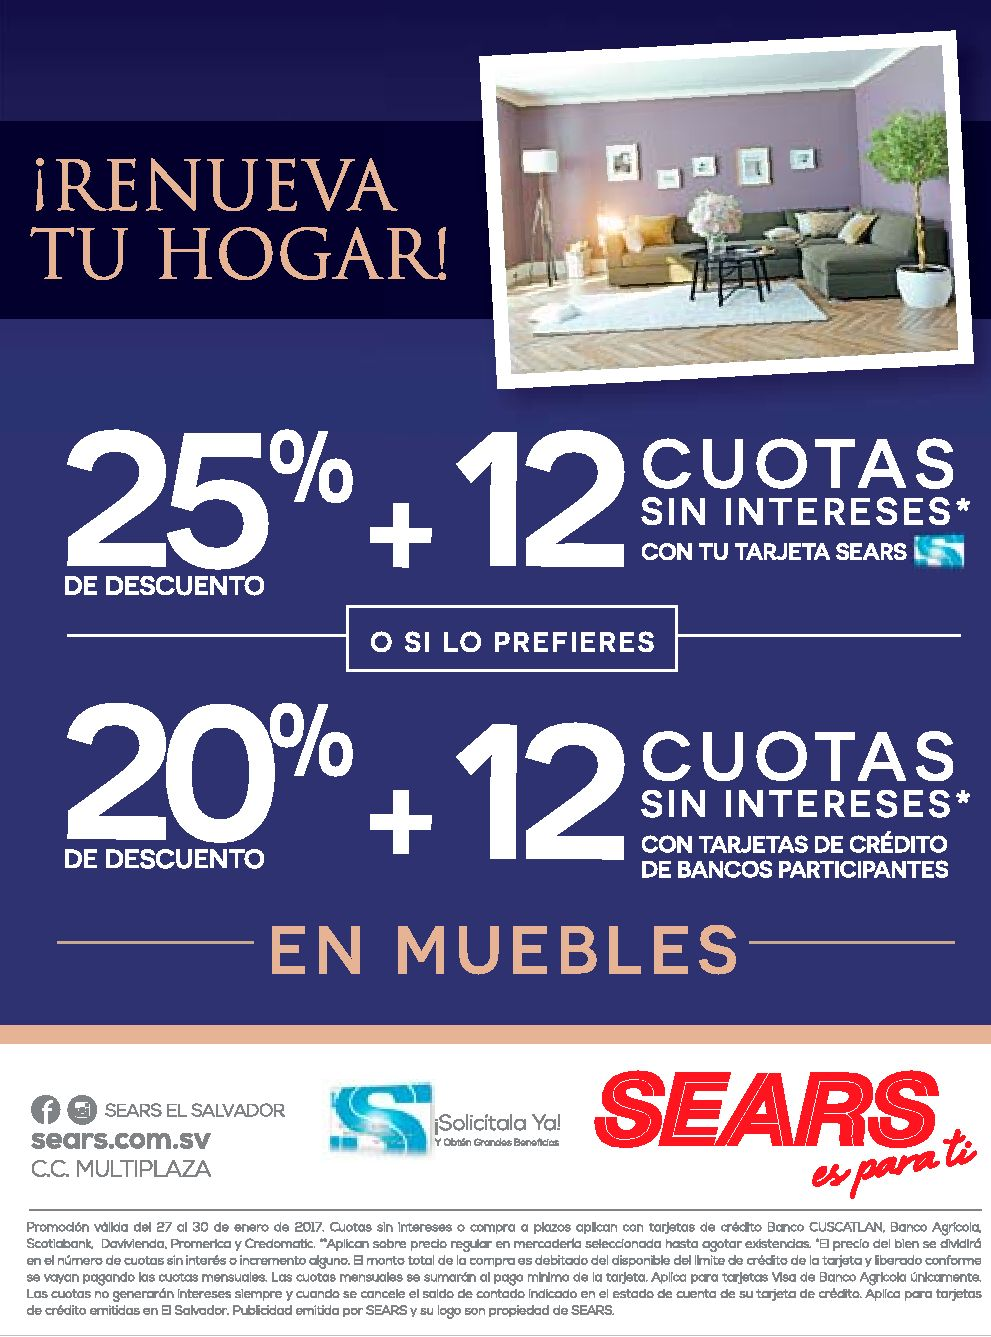 Dorable Sears Muebles Ideas Ornamento Elaboración Festooning Adorno ...